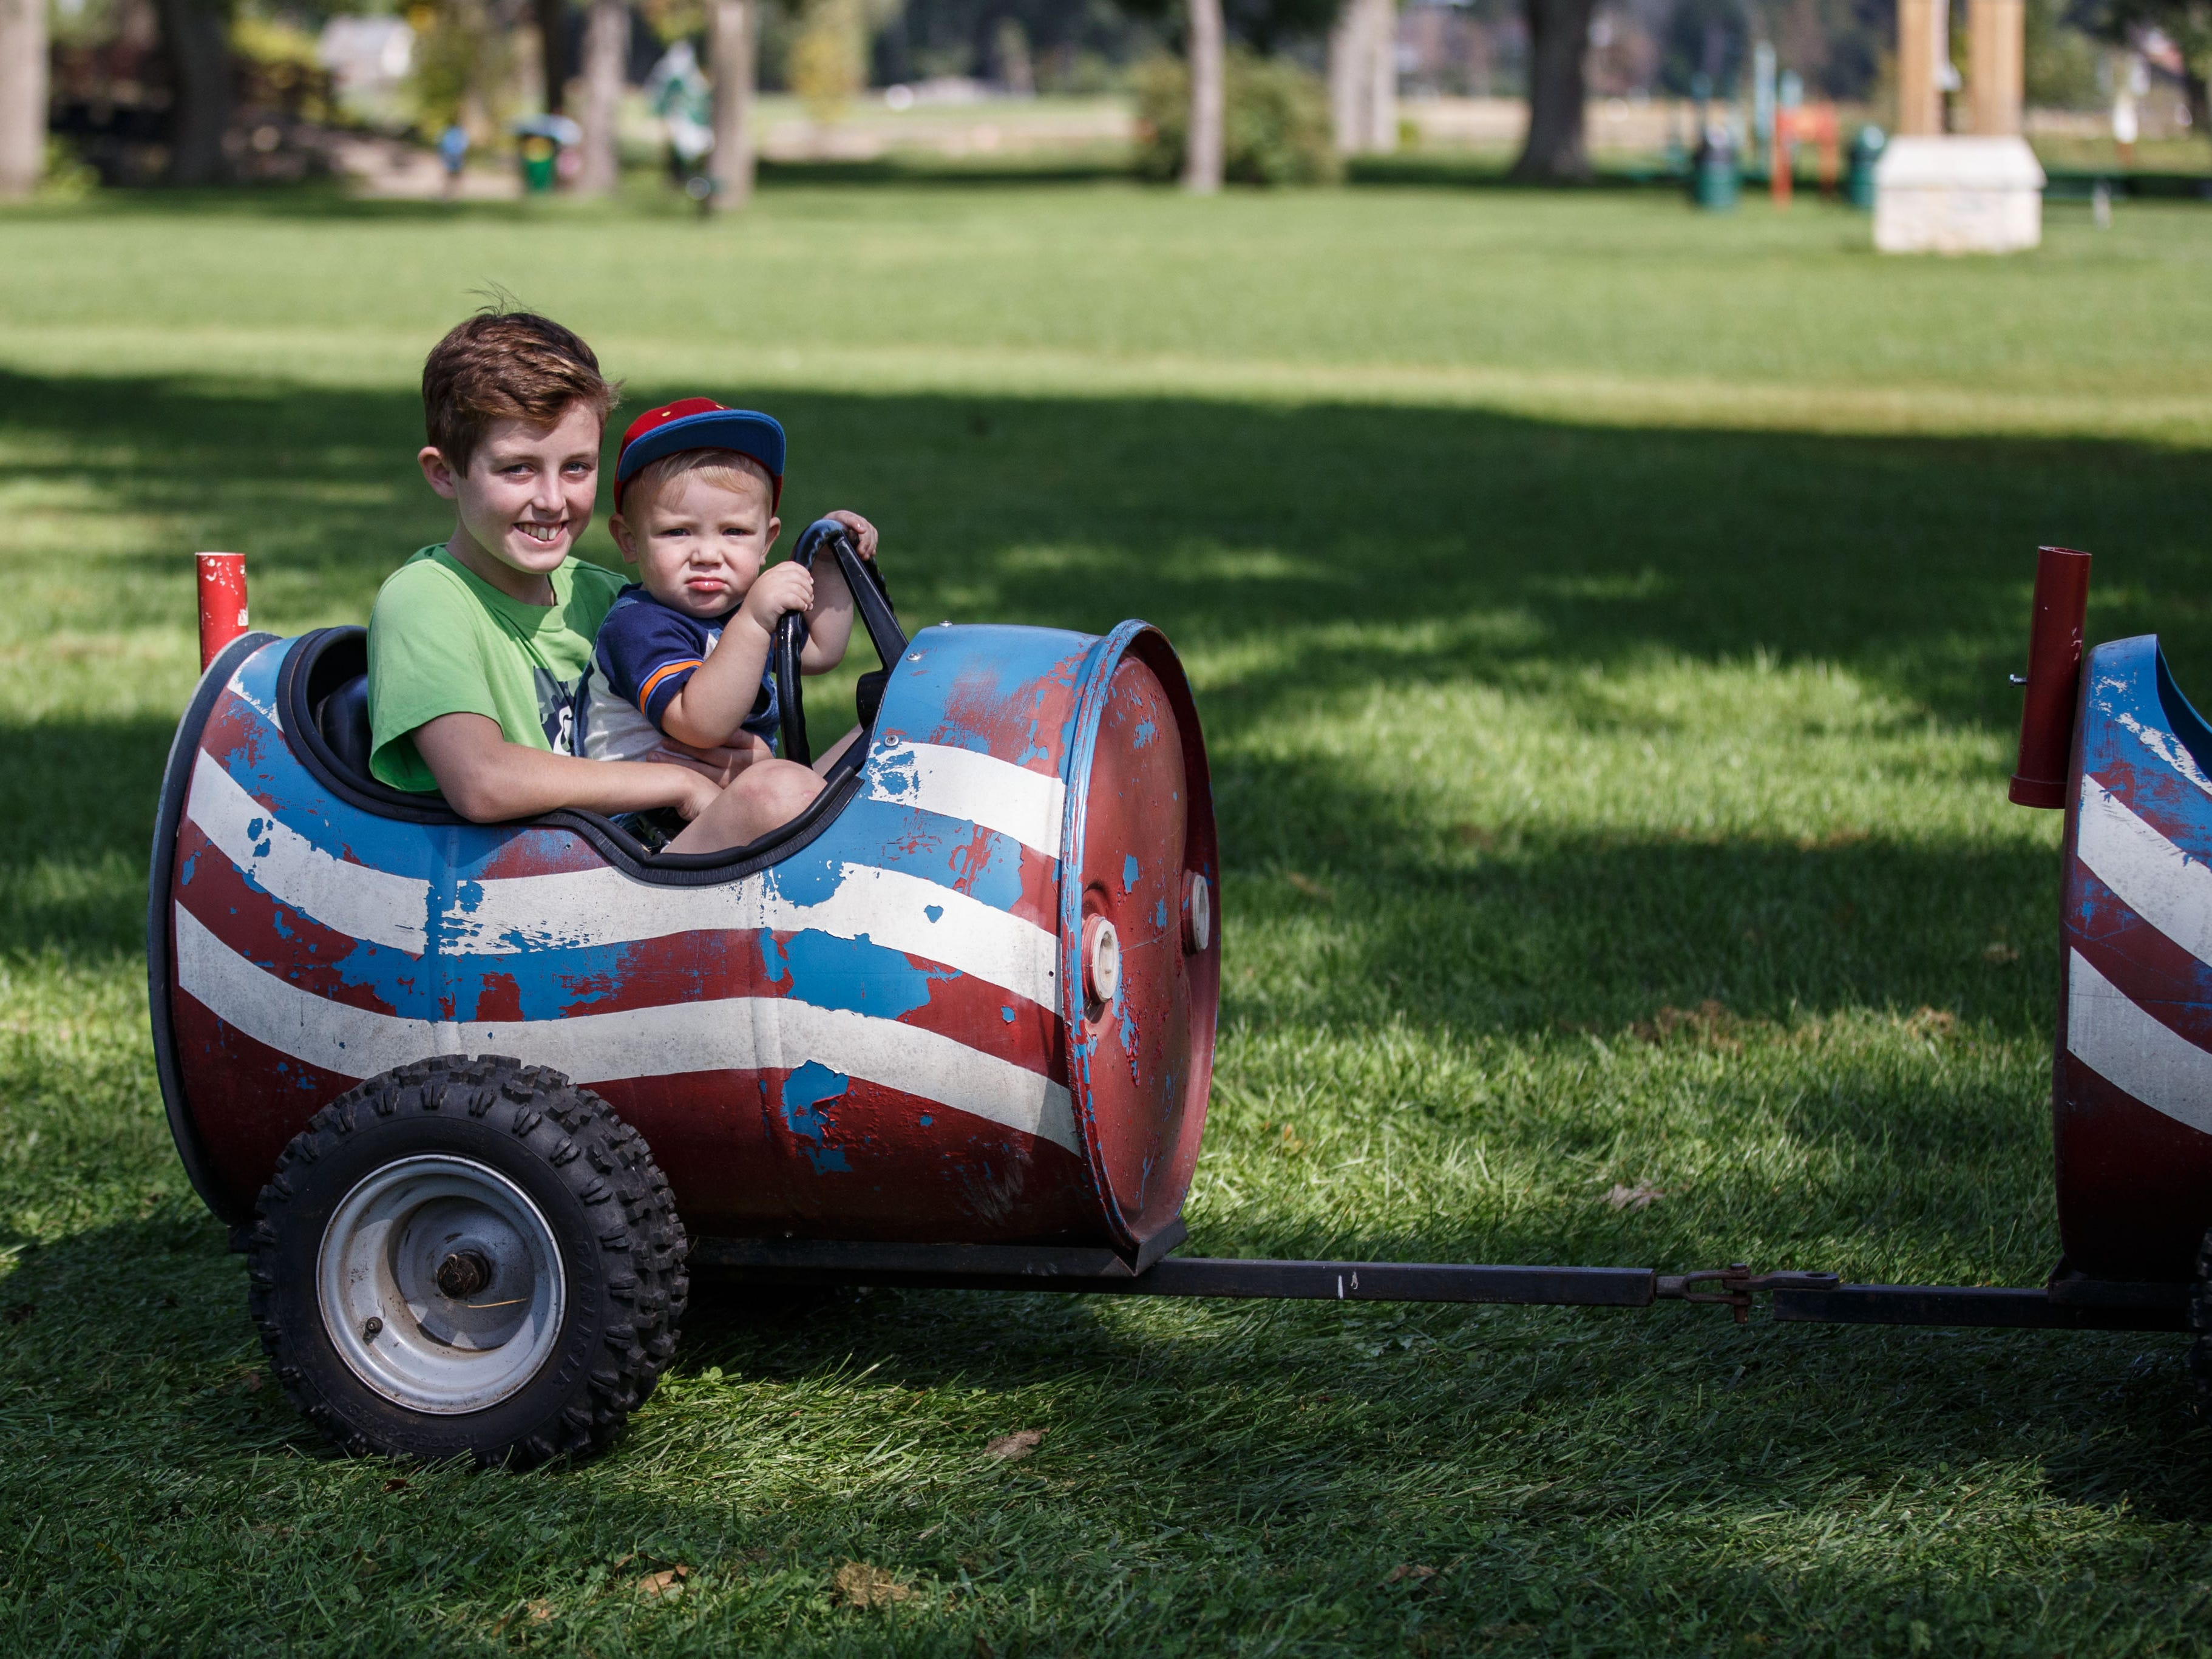 Ethan Holland, 13, of Cedarburg and his 1-year-old brother Beckett take a ride on the Cedar Creek Farm's barrel train during the 46th annual Wine & Harvest Festival in downtown Cedarburg on Sunday, Sept. 16, 2018.